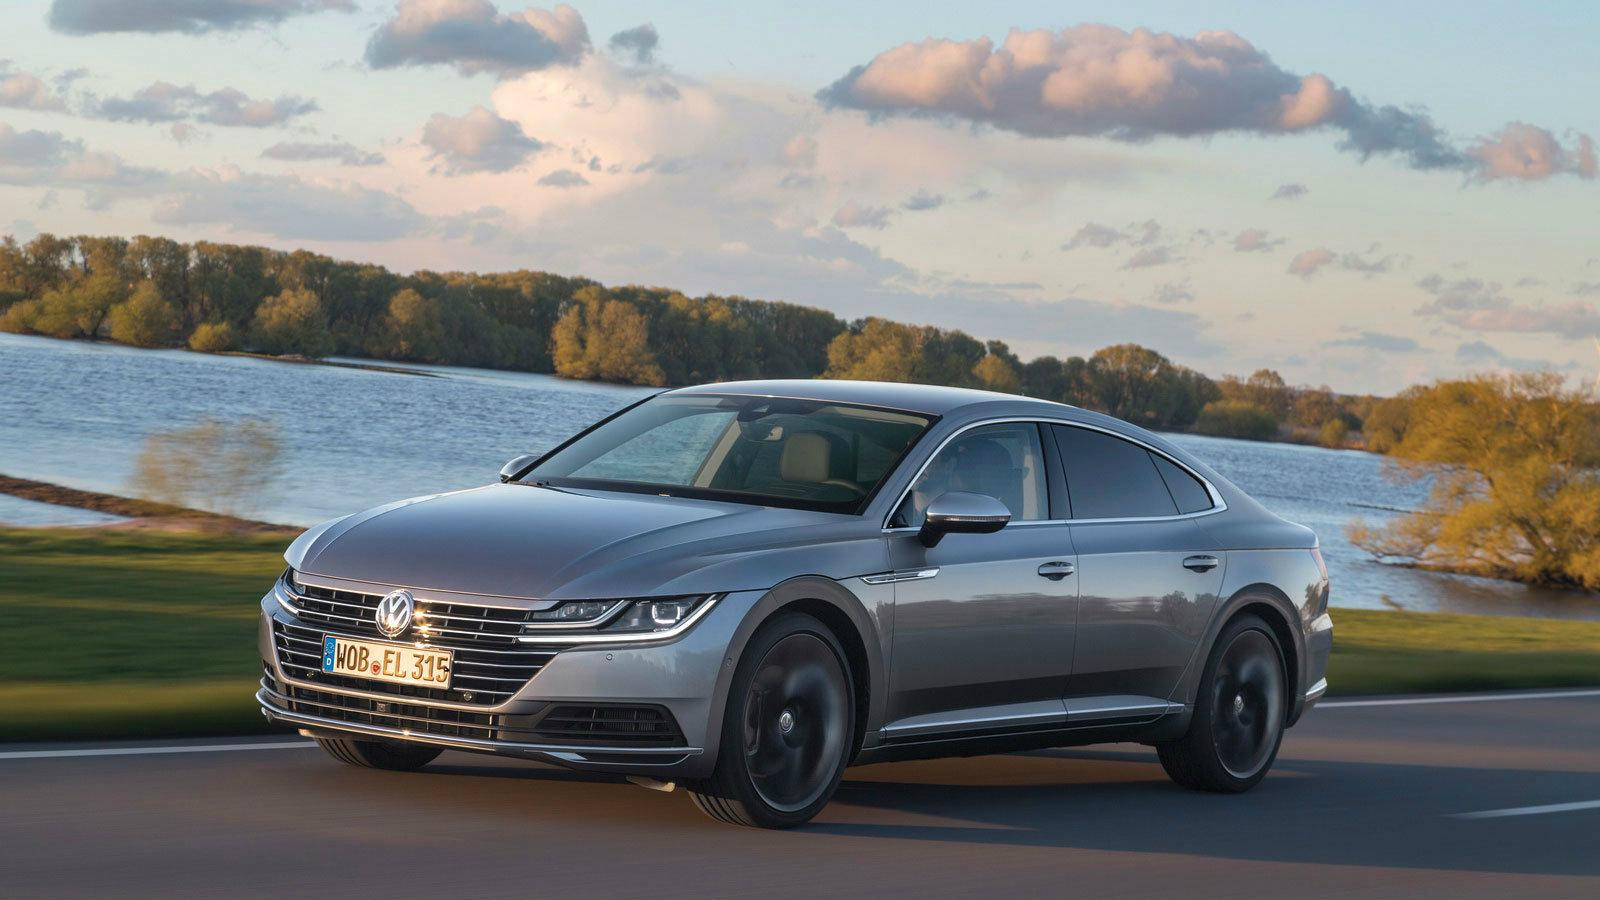 2015 Volkswagen Jetta Dealer Serving Nashville also Ayto Einai To Arteon 150227 also 7250 additionally Active Bon additionally Ducati Xdiavel Launched In India At Rs 15 69 Lakhs Ex Showroom Pune. on 2018 tiguan accessories